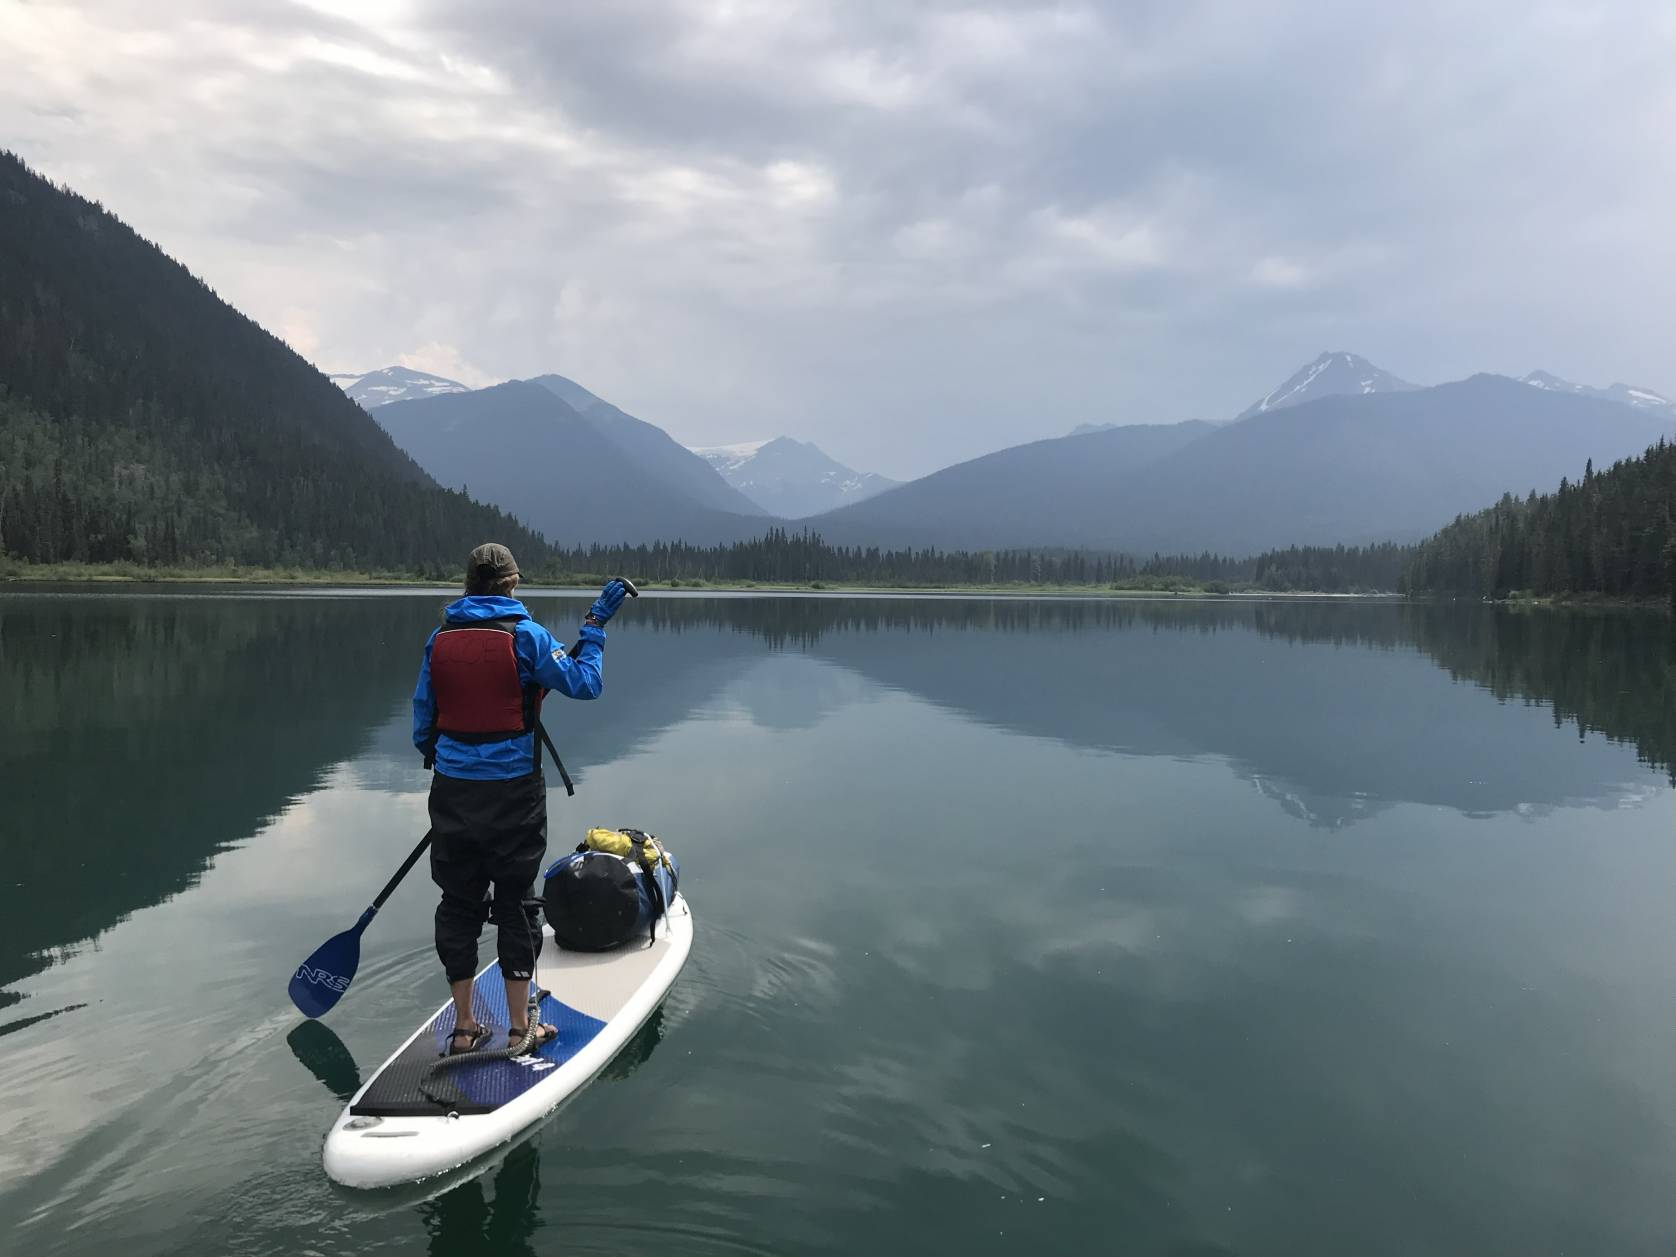 Author Mary in long sleeves and red PFD paddle boarding across flat water lake in British Columbia